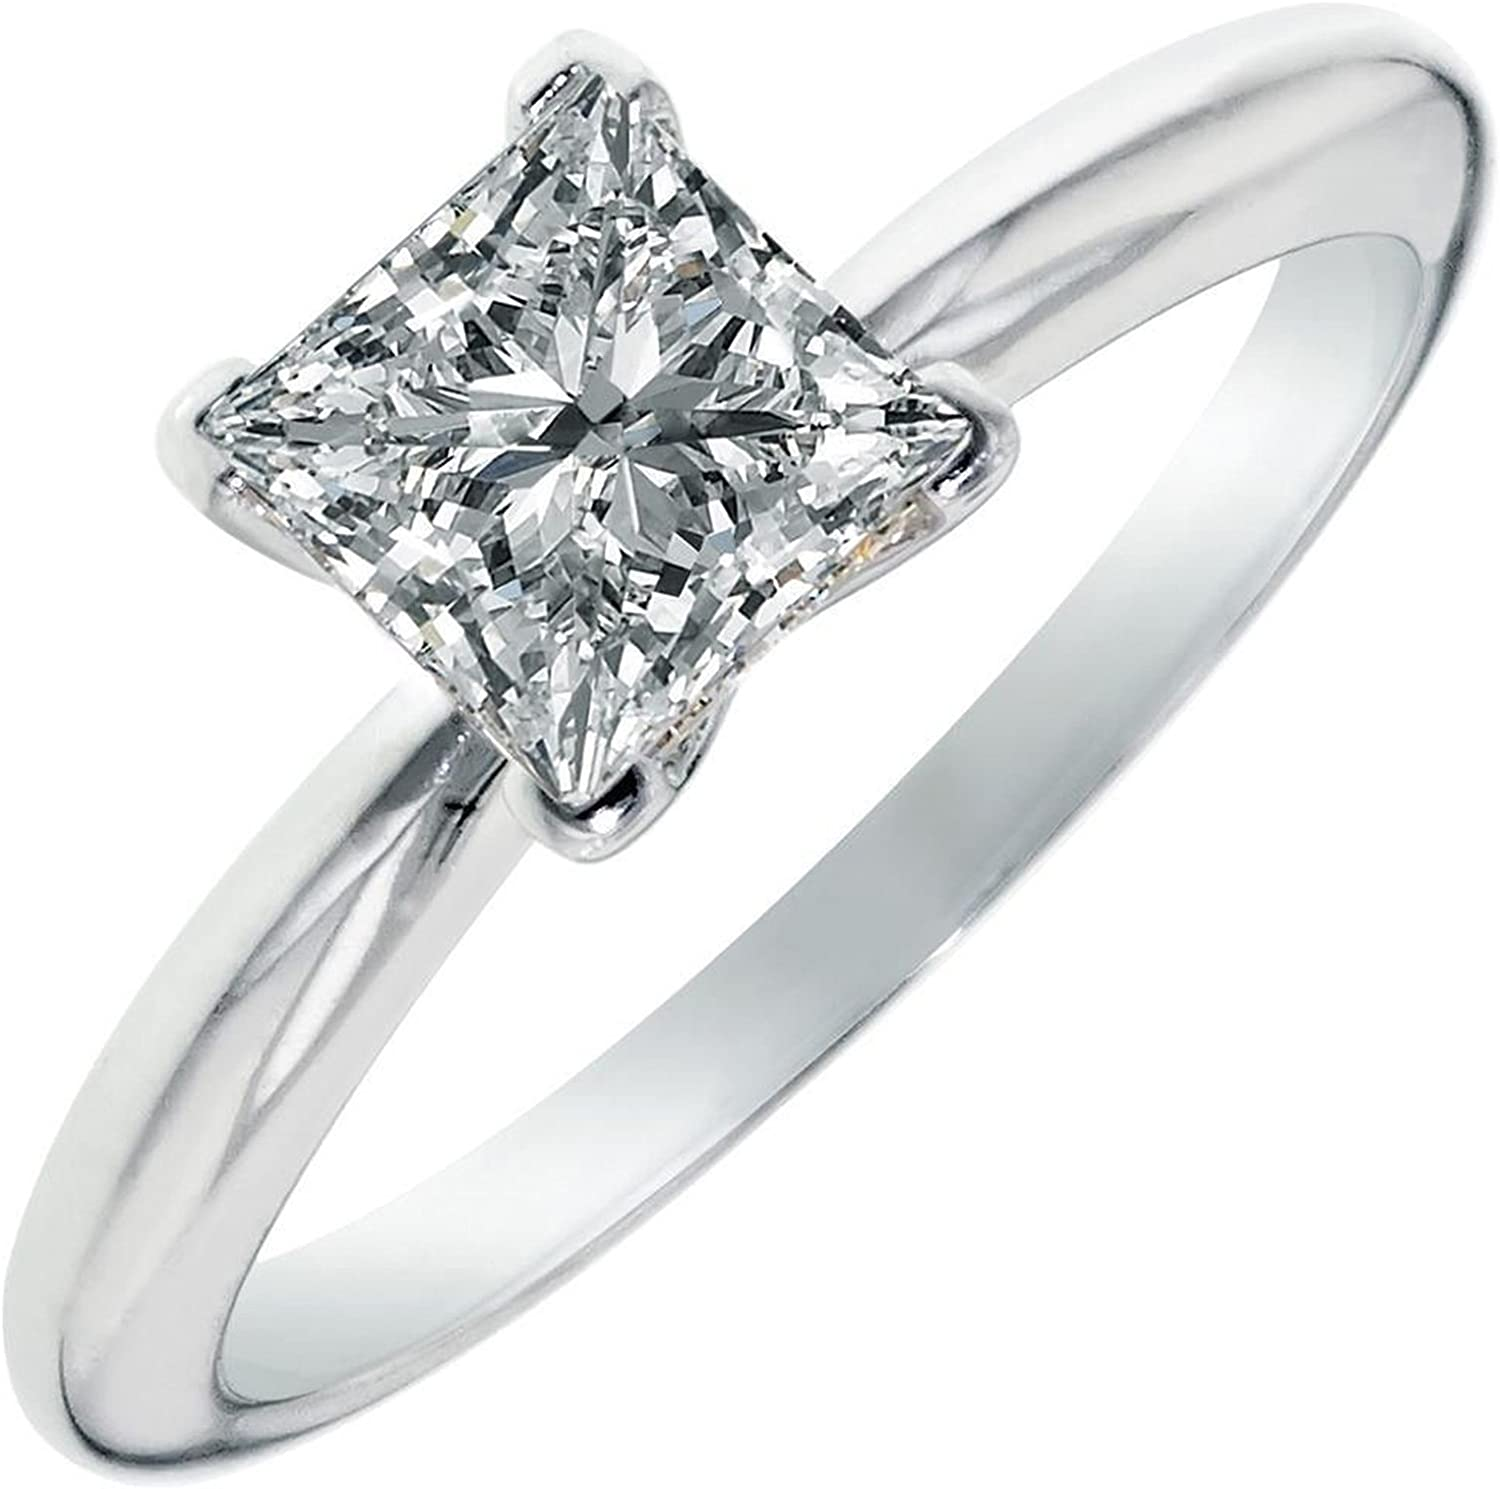 0.95ct Brilliant Princess Cut Solitaire Stunning Genuine Moissanite Ideal D 4-Prong Statement Ring in Solid 14k White Gold for Women